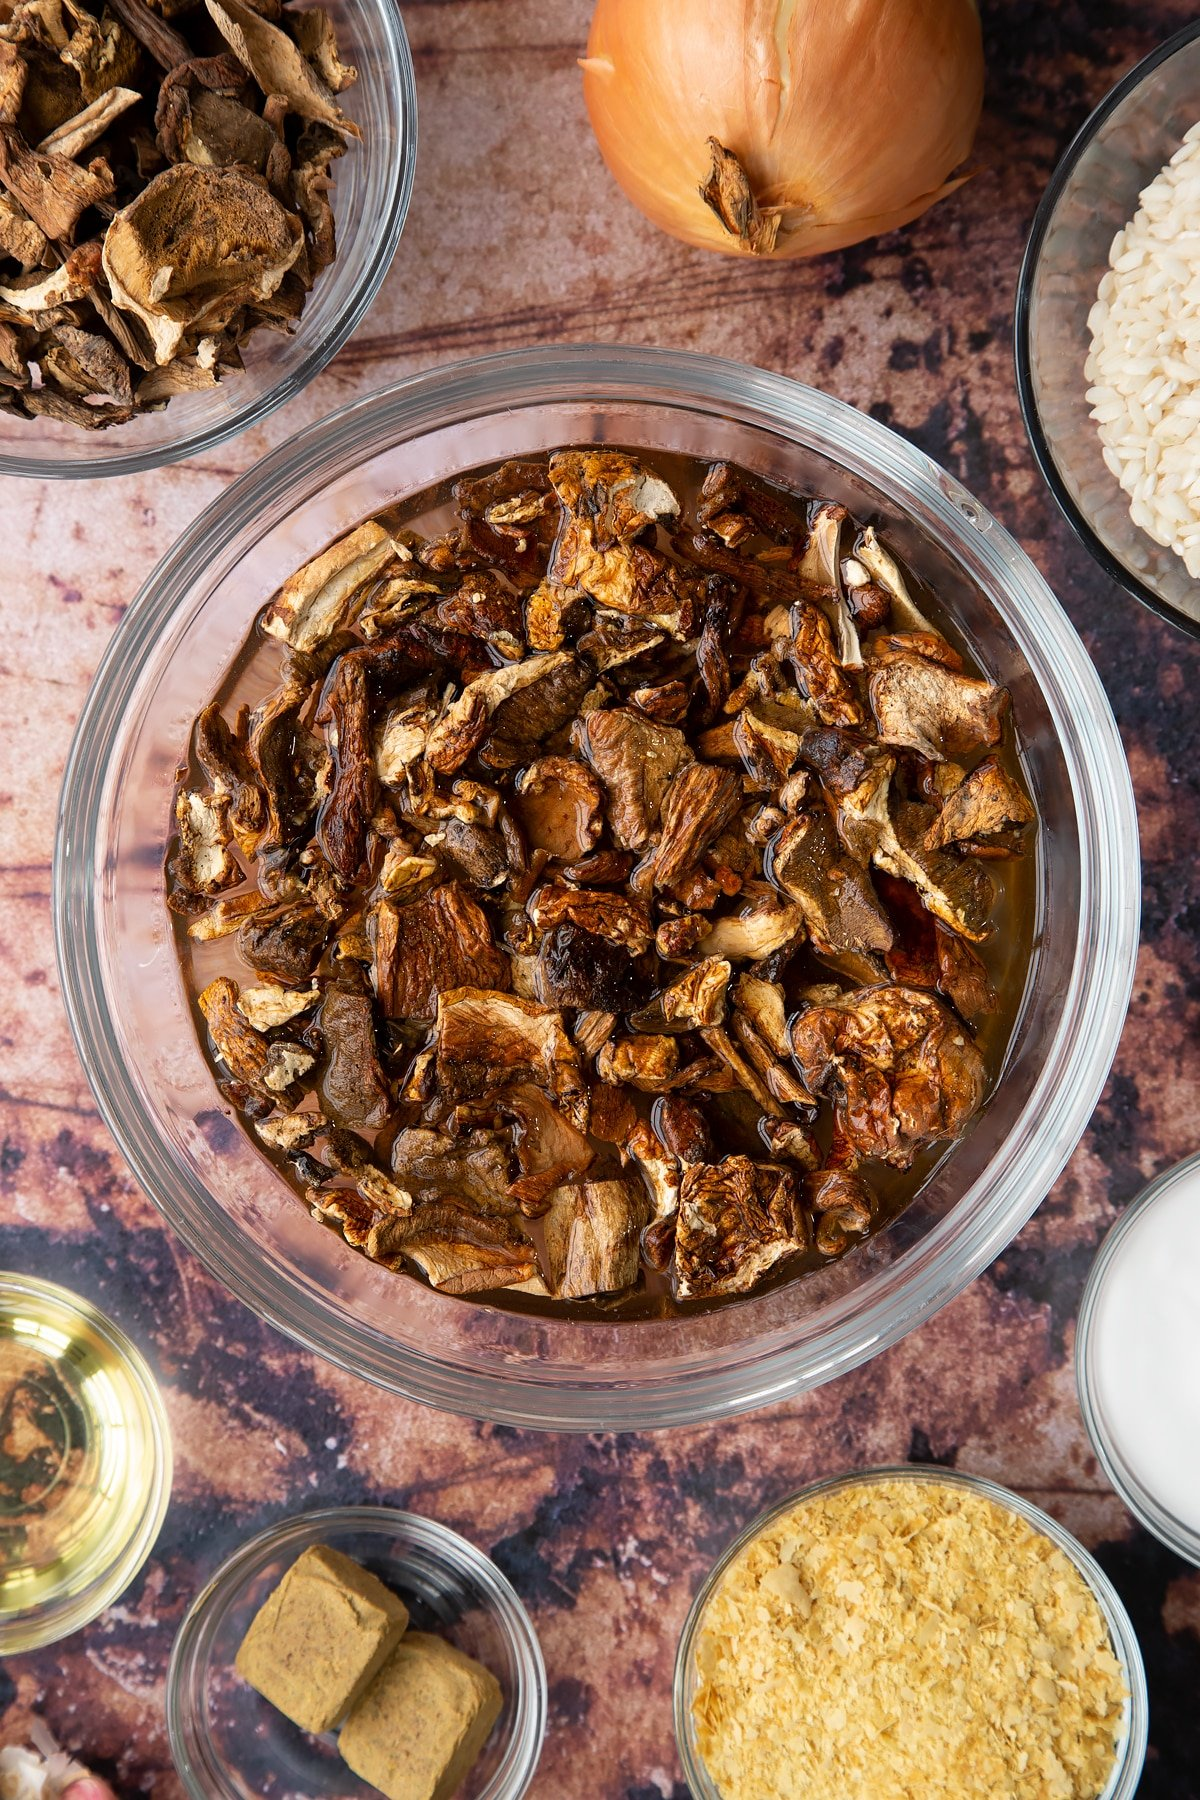 Dried porcini mushrooms covered with water in a glass bowl. Ingredients to make vegan mushroom risotto surround the bowl.